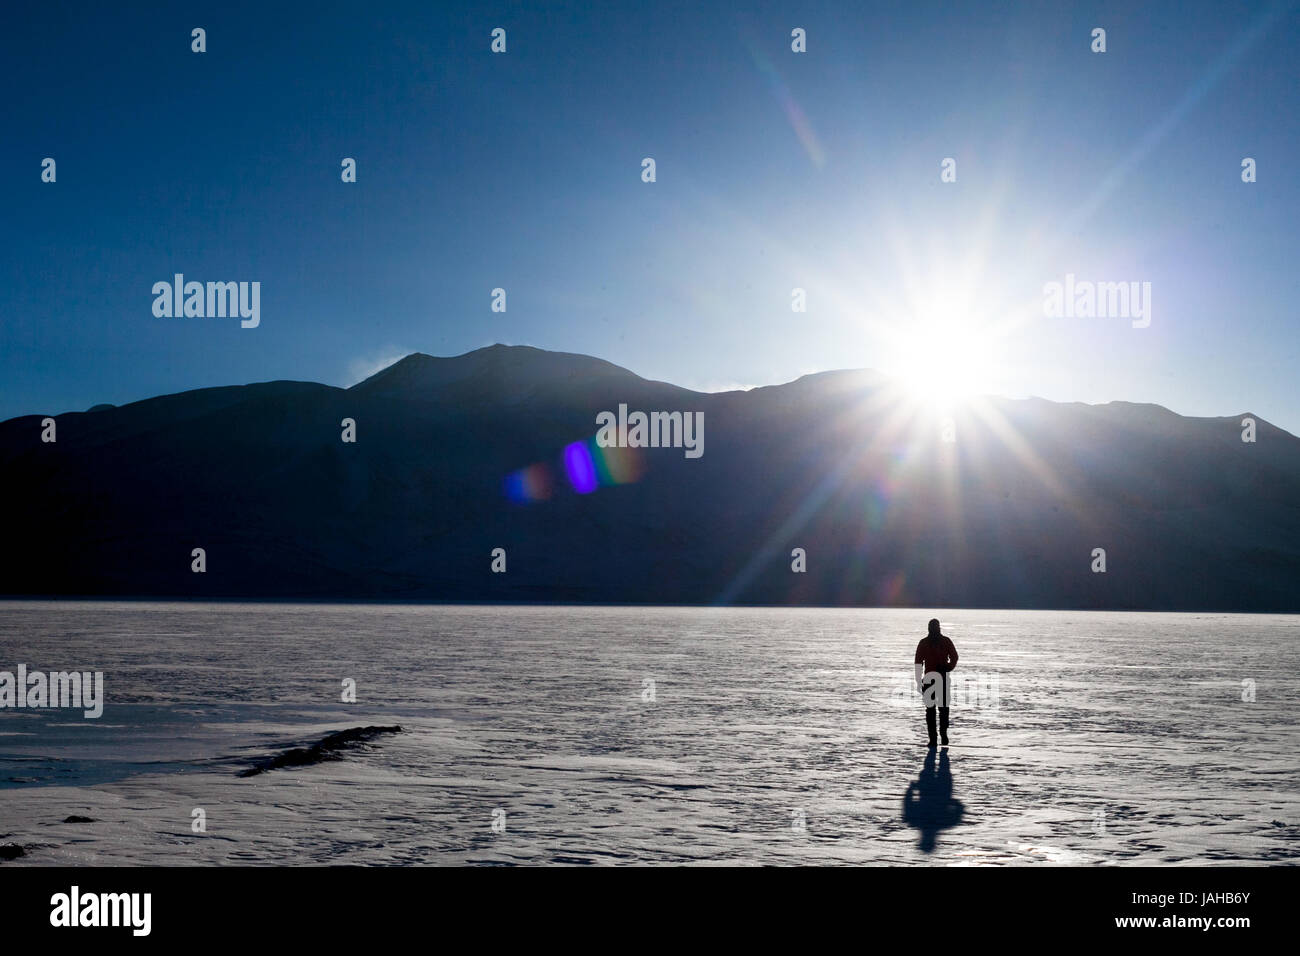 The Tsomoiriri lake in Ladakh completely freezes over during the winters. Here you see a man walking over the surface - Stock Image